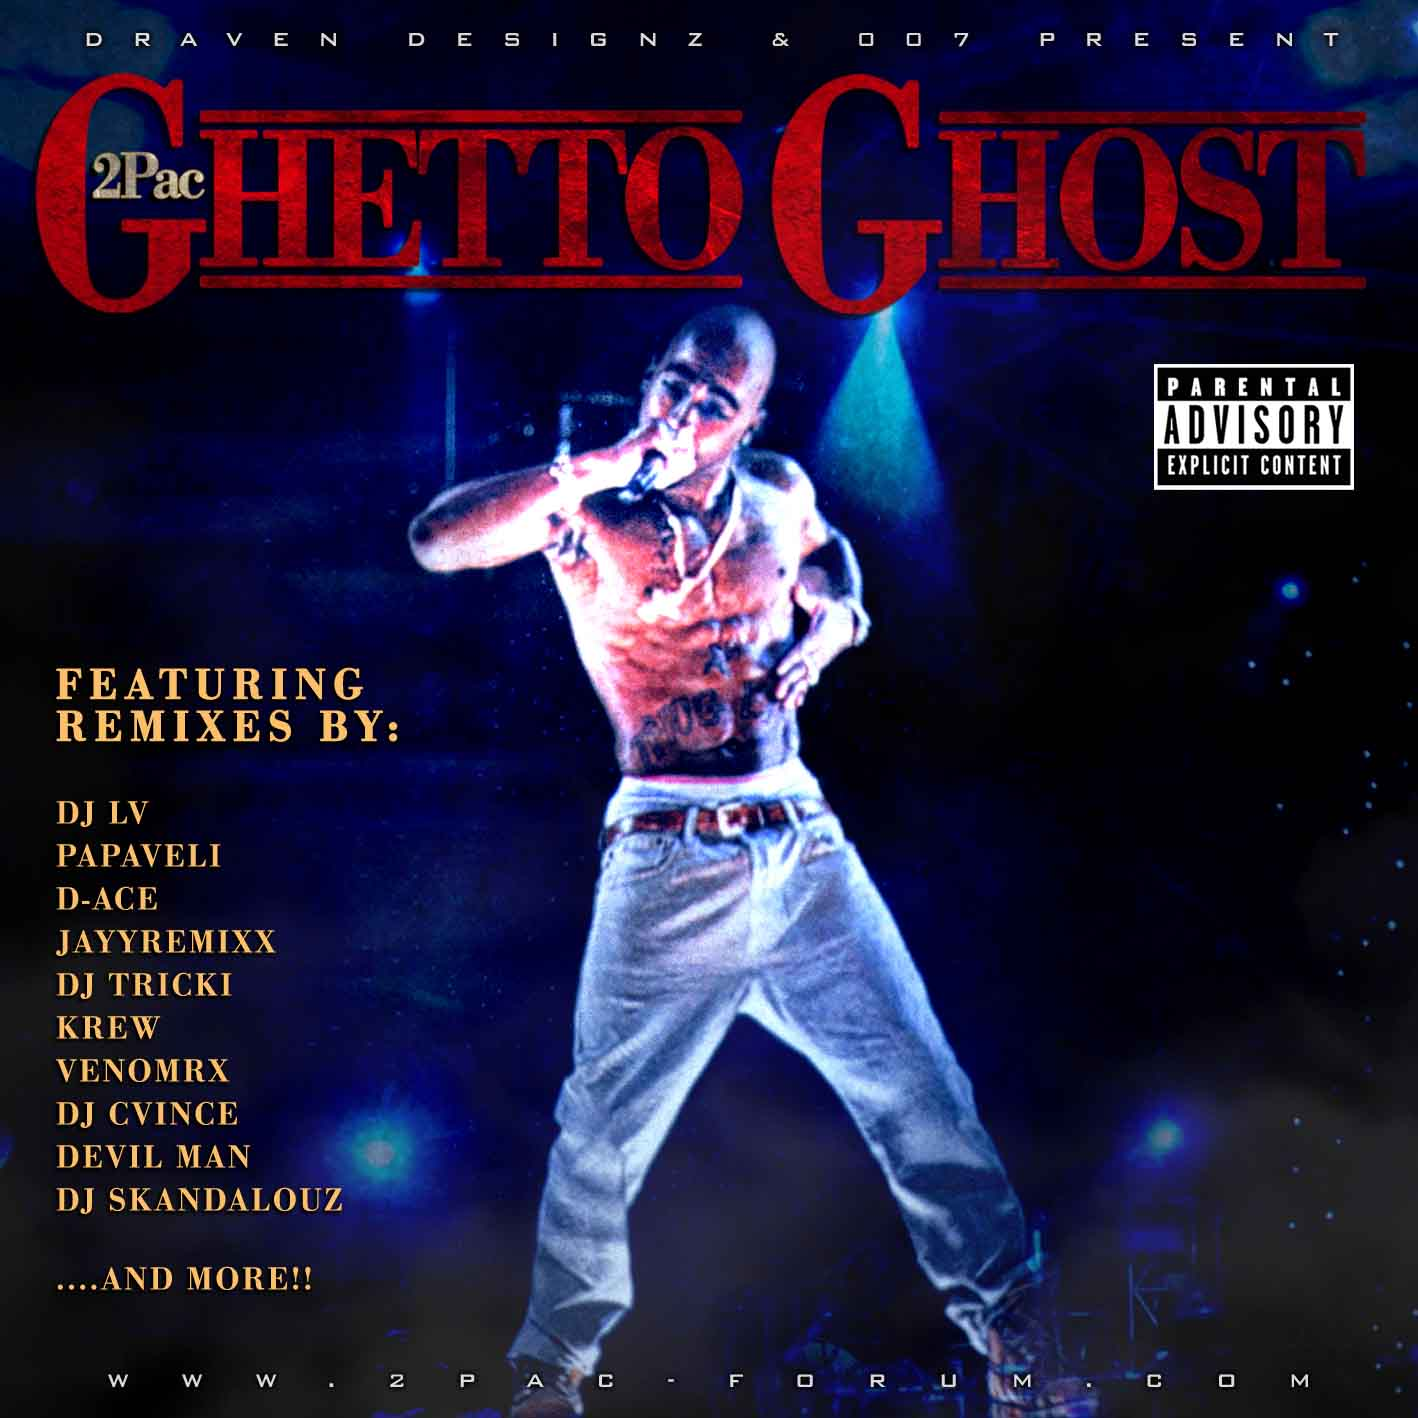 Tupac ghost free download